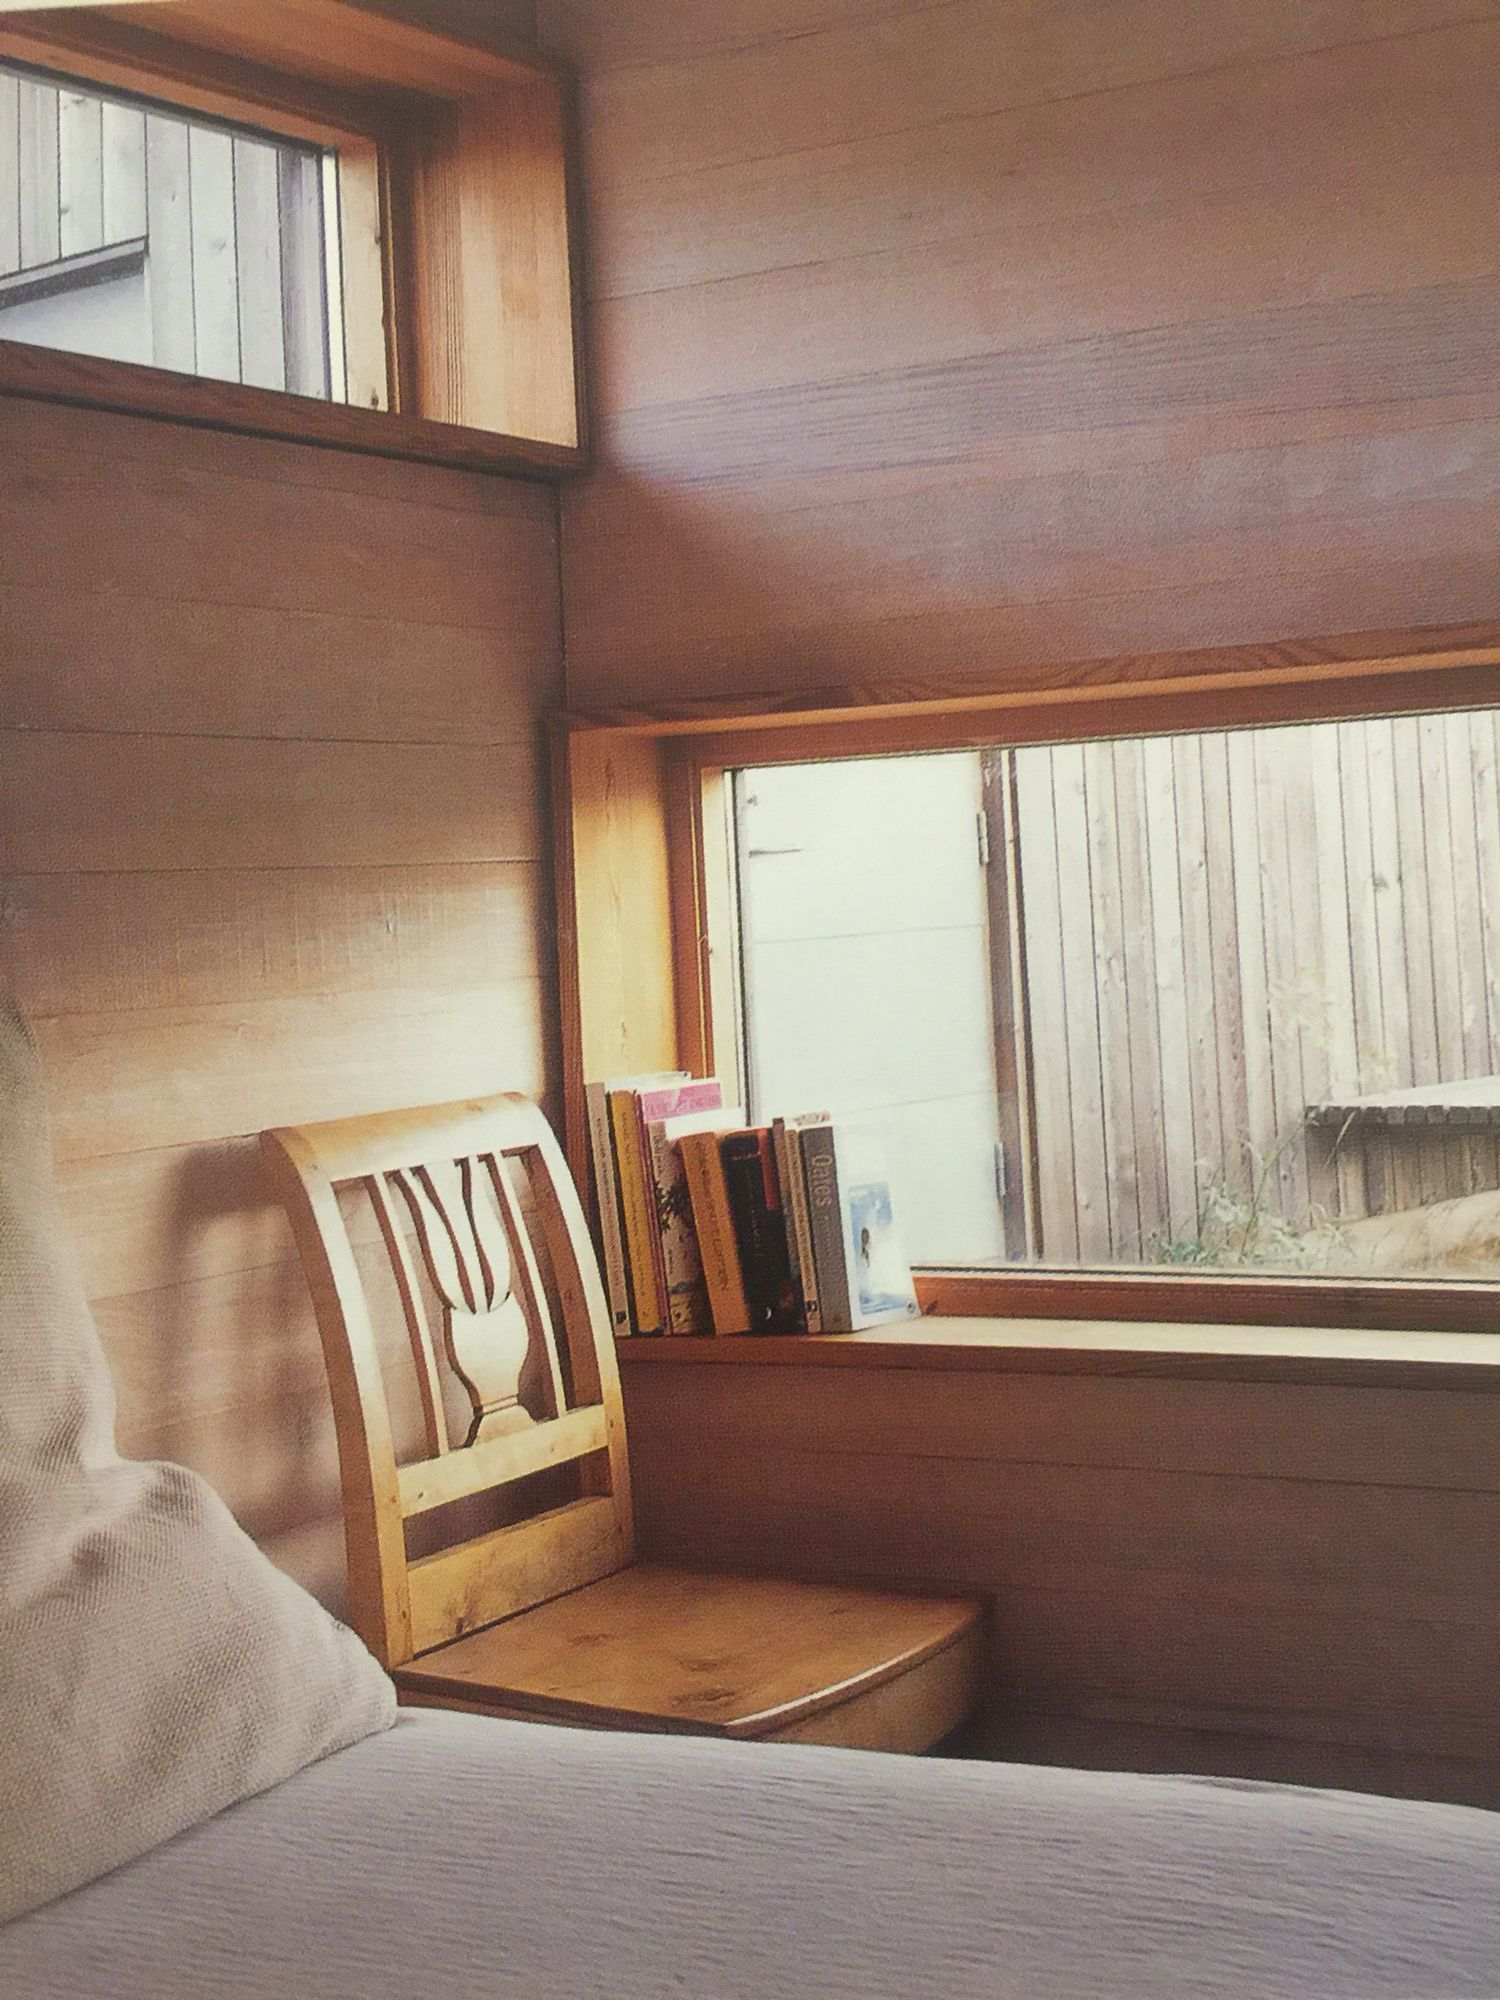 Chair Next To Bed In Kid S Room With Shelf Window Room Inspiration Kids Room Childrens Room